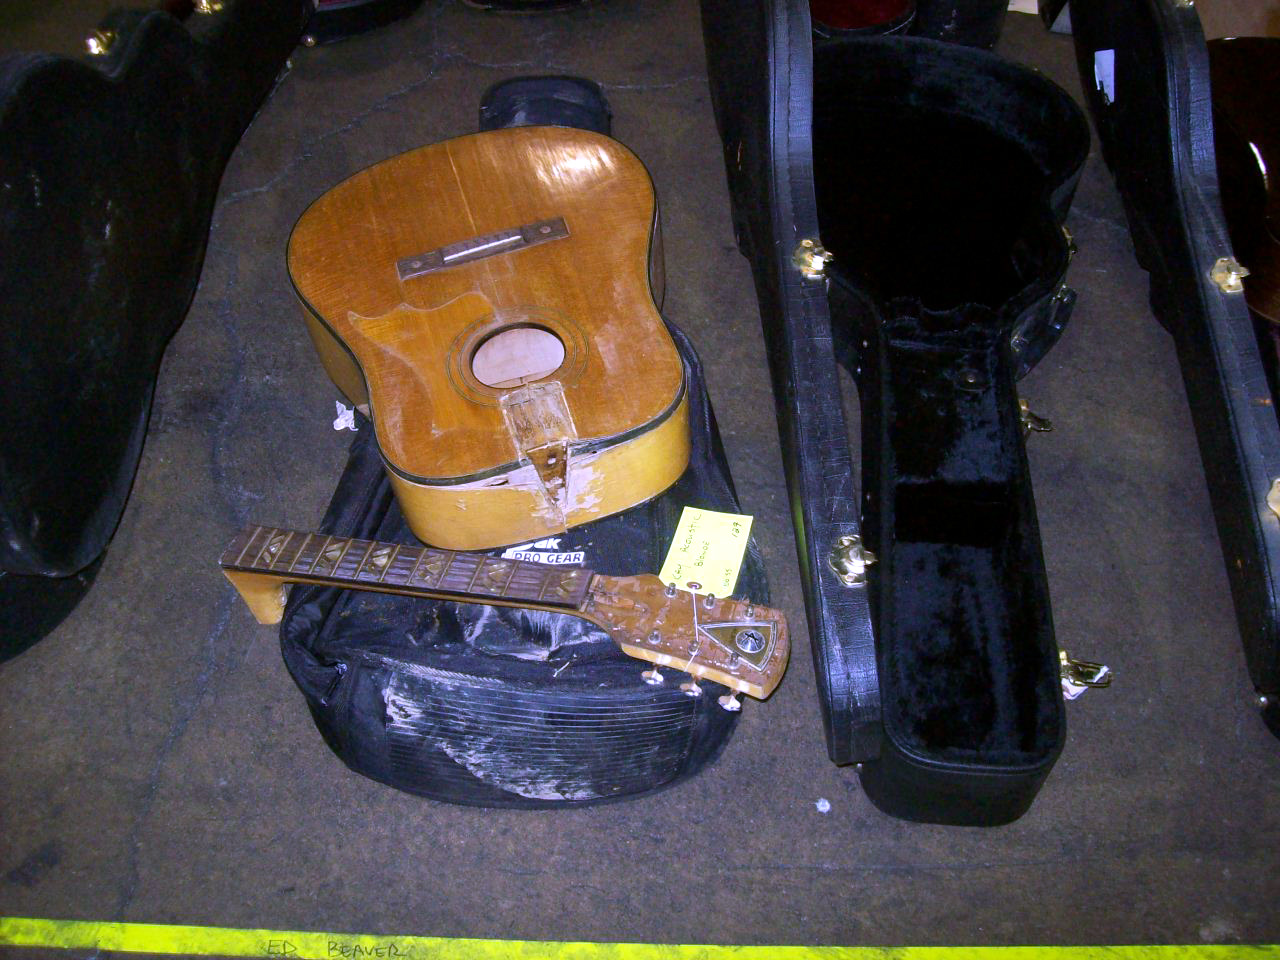 3 Reasons to Leave Instruments at Home during Vacation